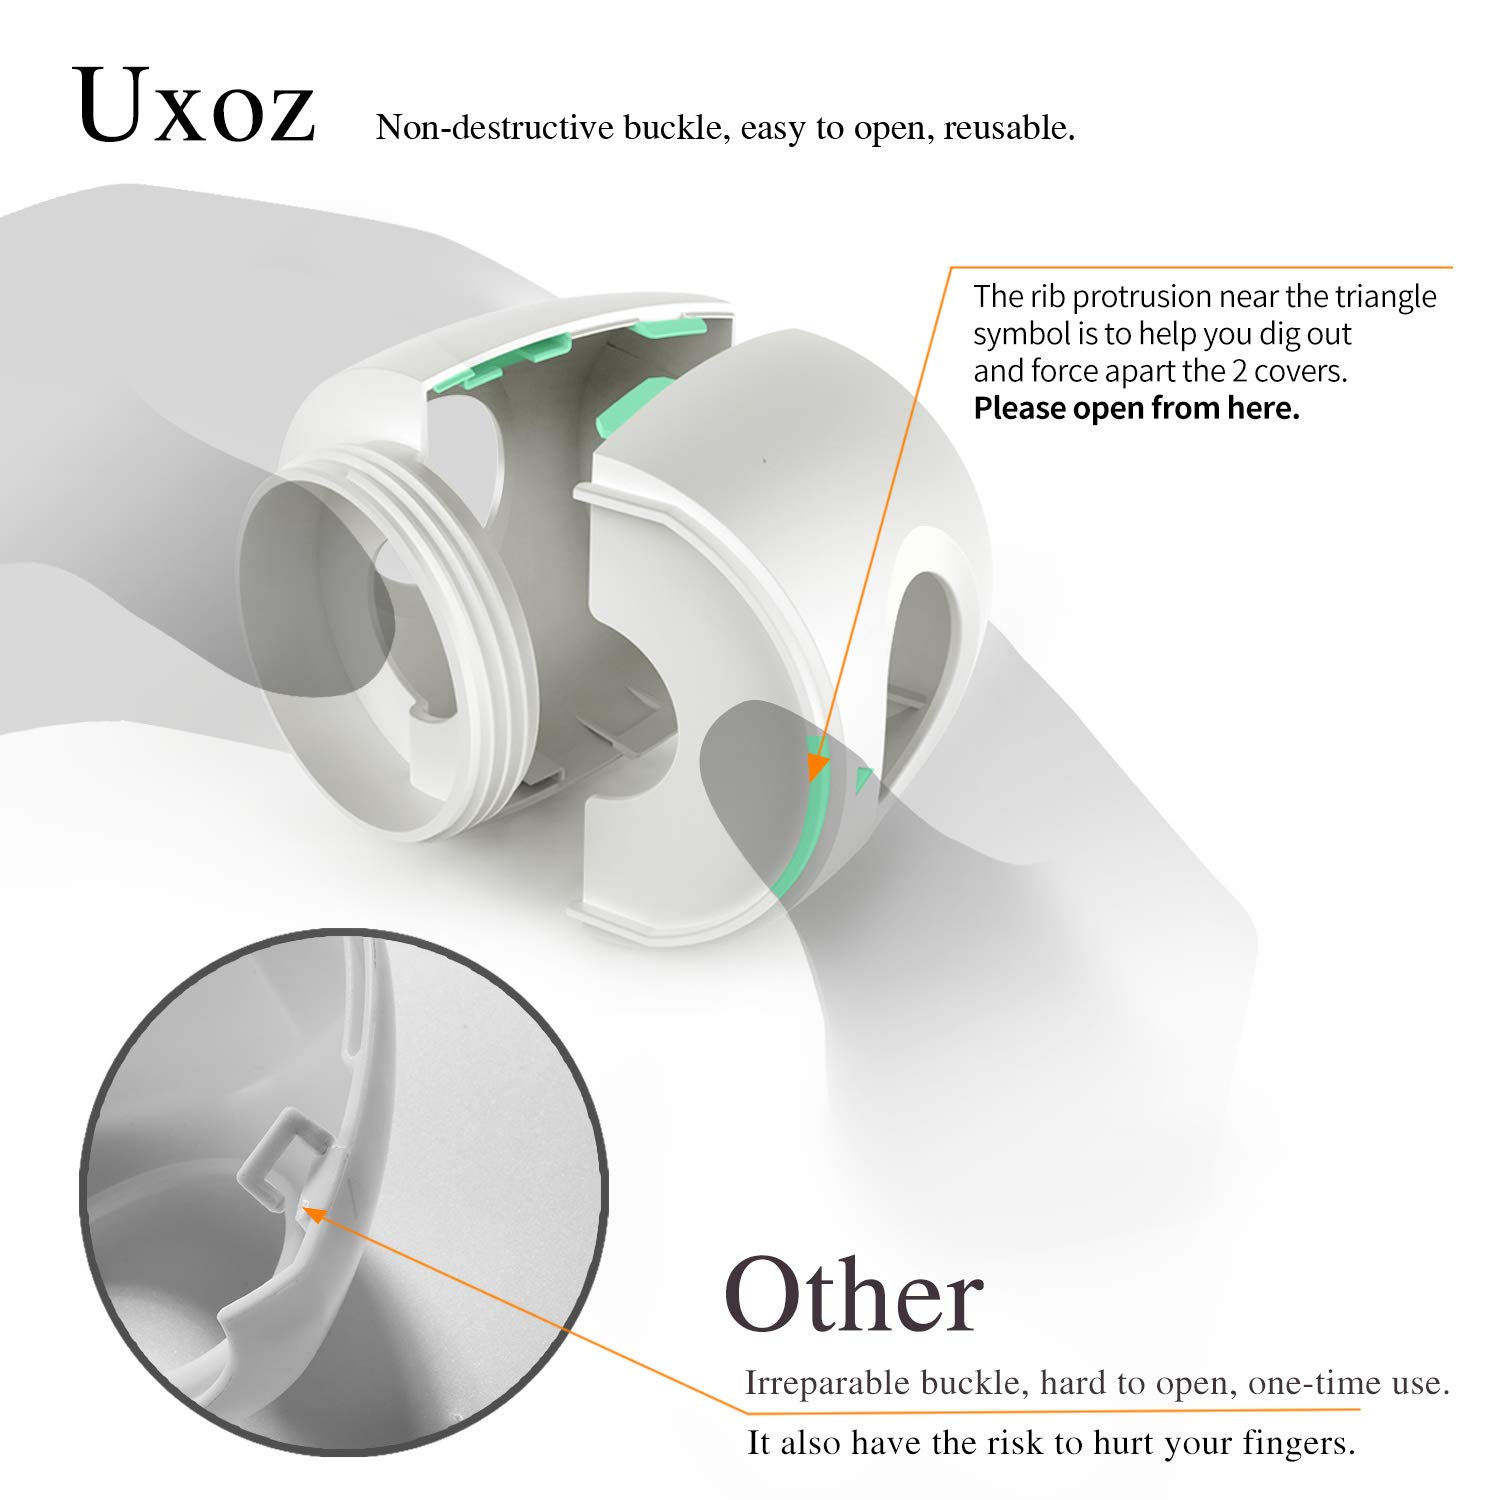 Uxoz Door Knob Safety Cover, 4 Pack Baby Safety Door Handle Cover, Screw Thread Design, Reusable, Reliable Solution to Prevent Kids from Popping Off The Covers by Uxoz (Image #3)